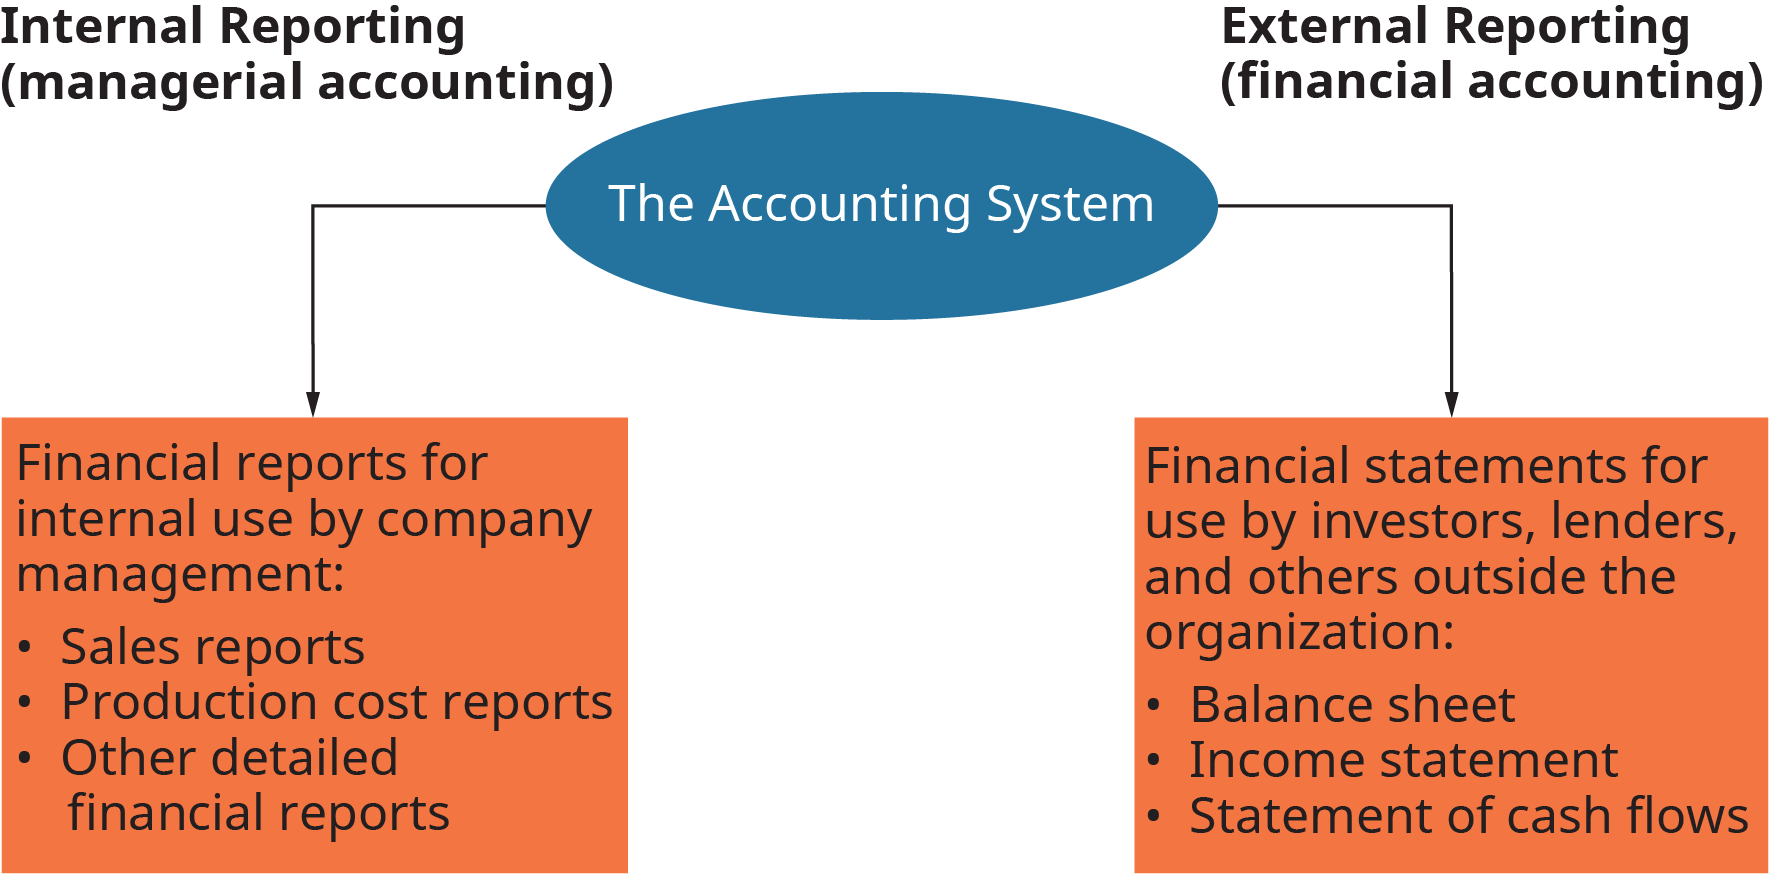 The diagram shows the accounting system at the center, and branching to the left and right. To the left is internal reporting, managerial accounting. To the right is external reporting, financial accounting. On the internal side, the diagram reads as follows. Financial reports for internal use by company management; sales reports, production cost reports, and other detailed financial reports. On the external reporting side, the diagram reads as follows. Financial statements for use by investors, lenders, and others outside the organization; balance sheet, income statement, and statement of cash flows.